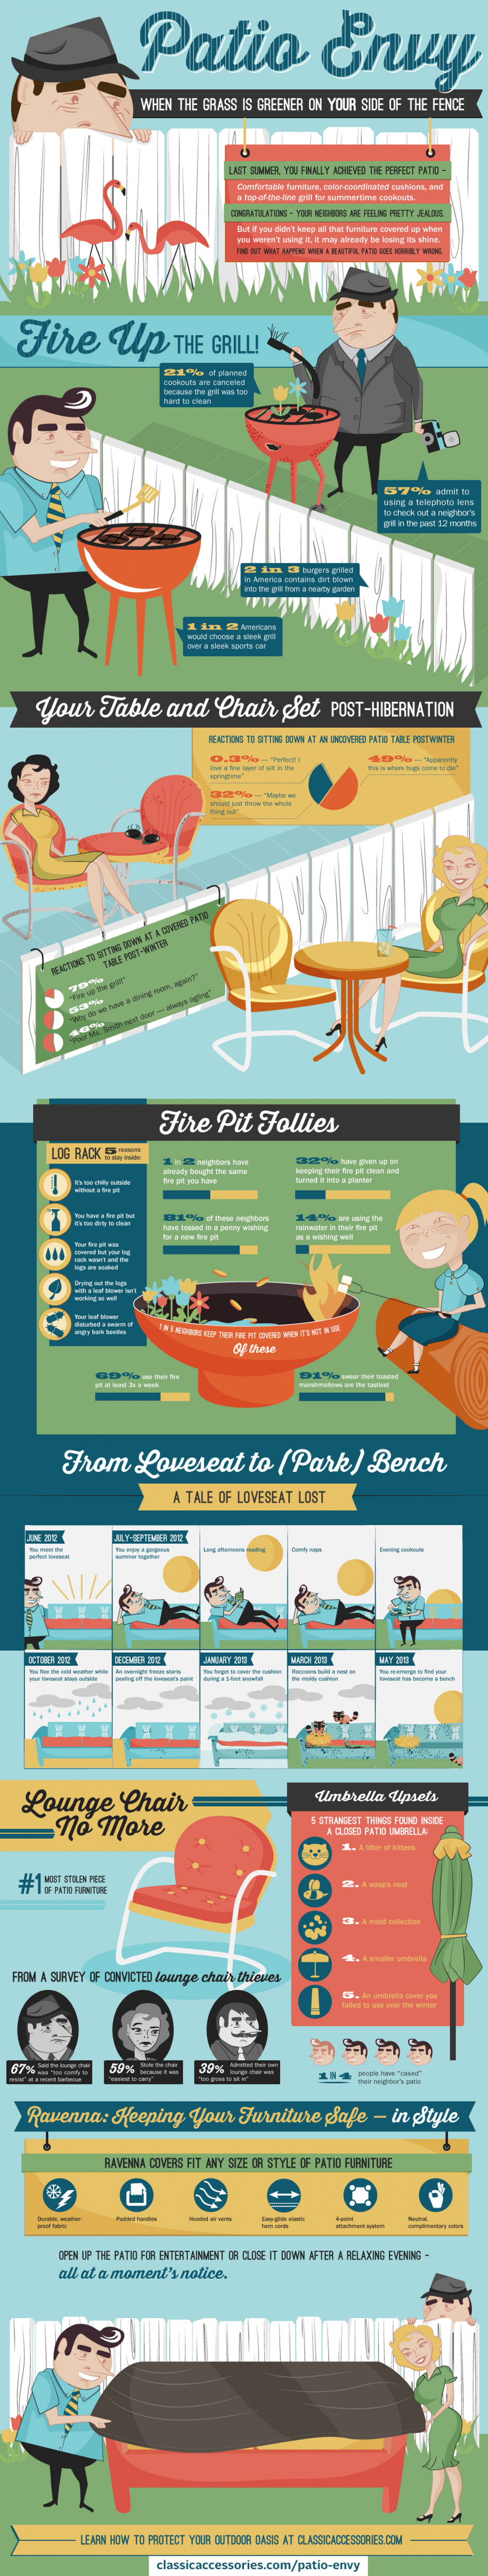 Patio Envy Infographic